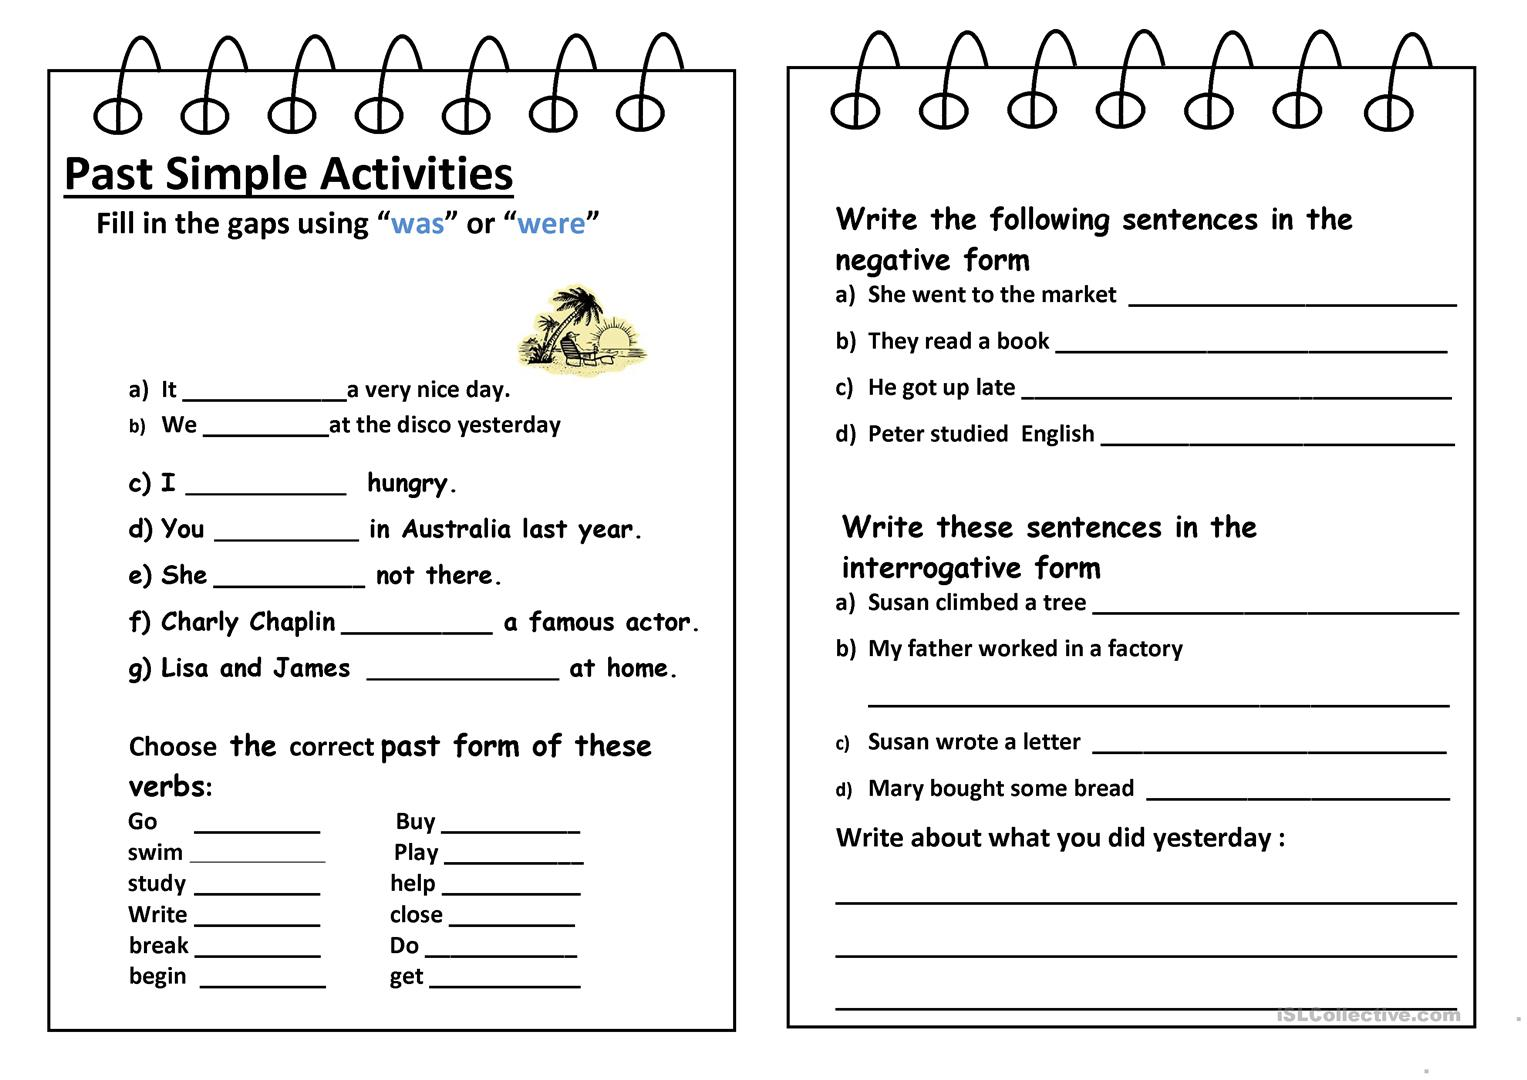 Past Simple Activities